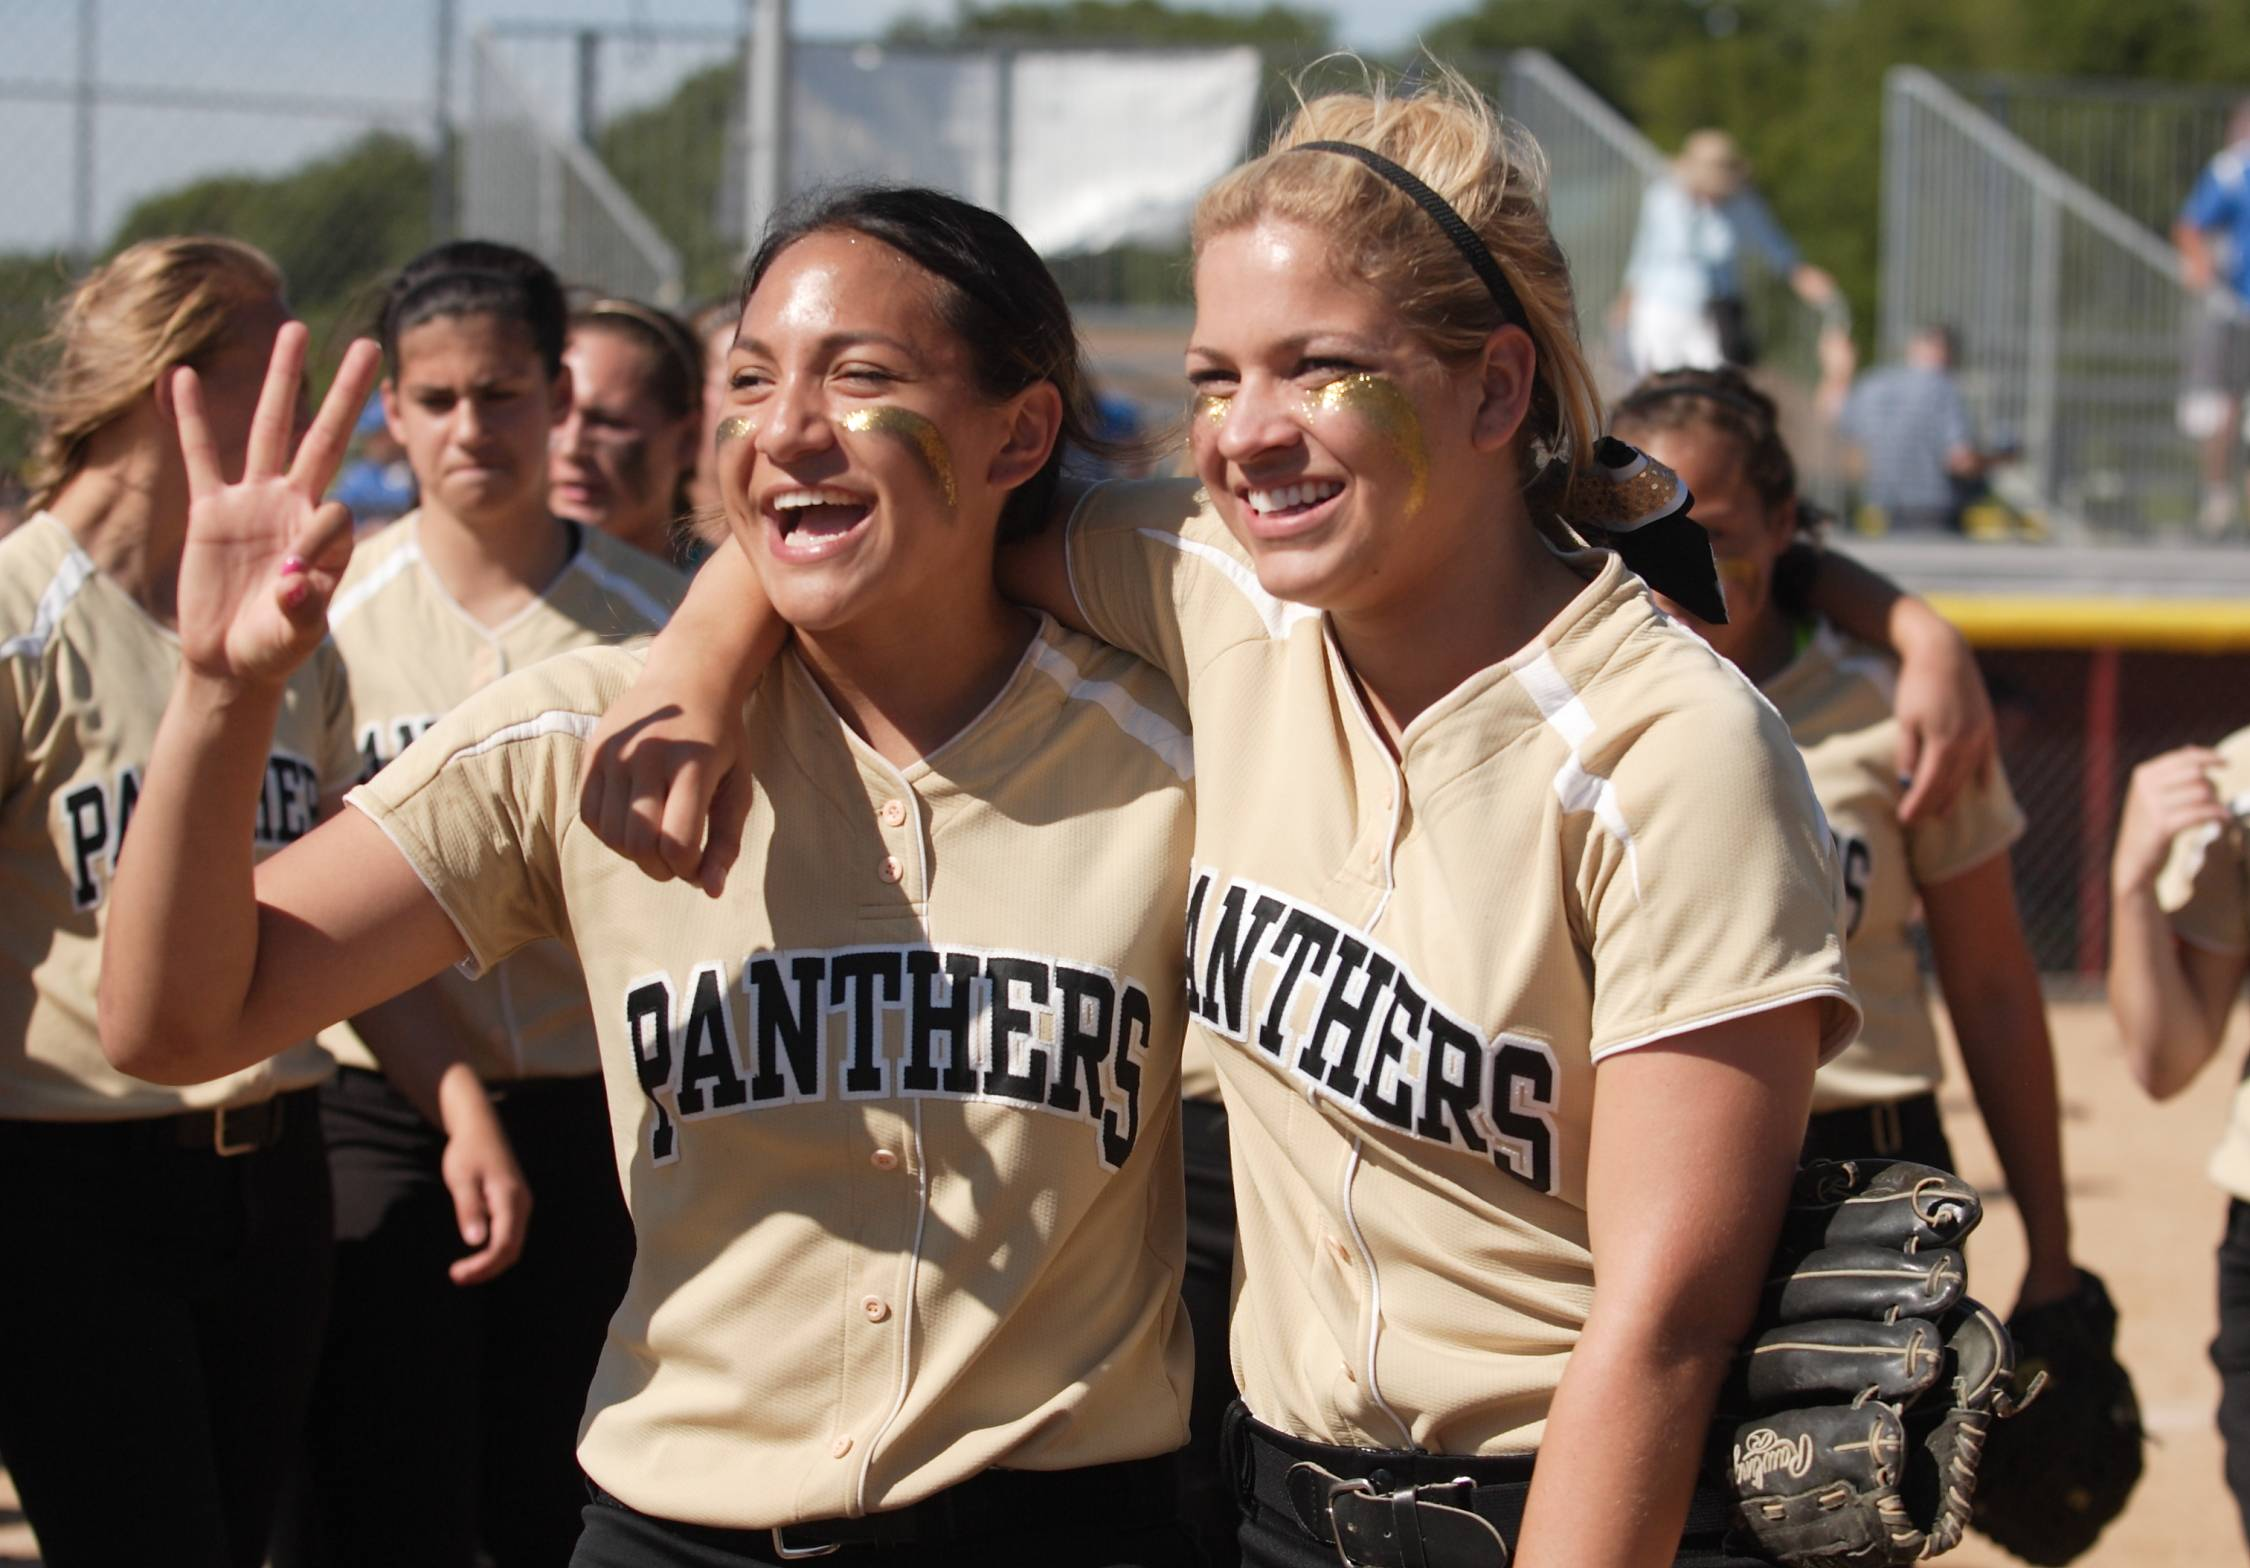 Lauren Gramann and Alex Caliva celebrate the Panthers' third-place wind after their IHSA Class 4A game on Saturday. Glenbard North defeated Lincoln-Way East, 6-0.